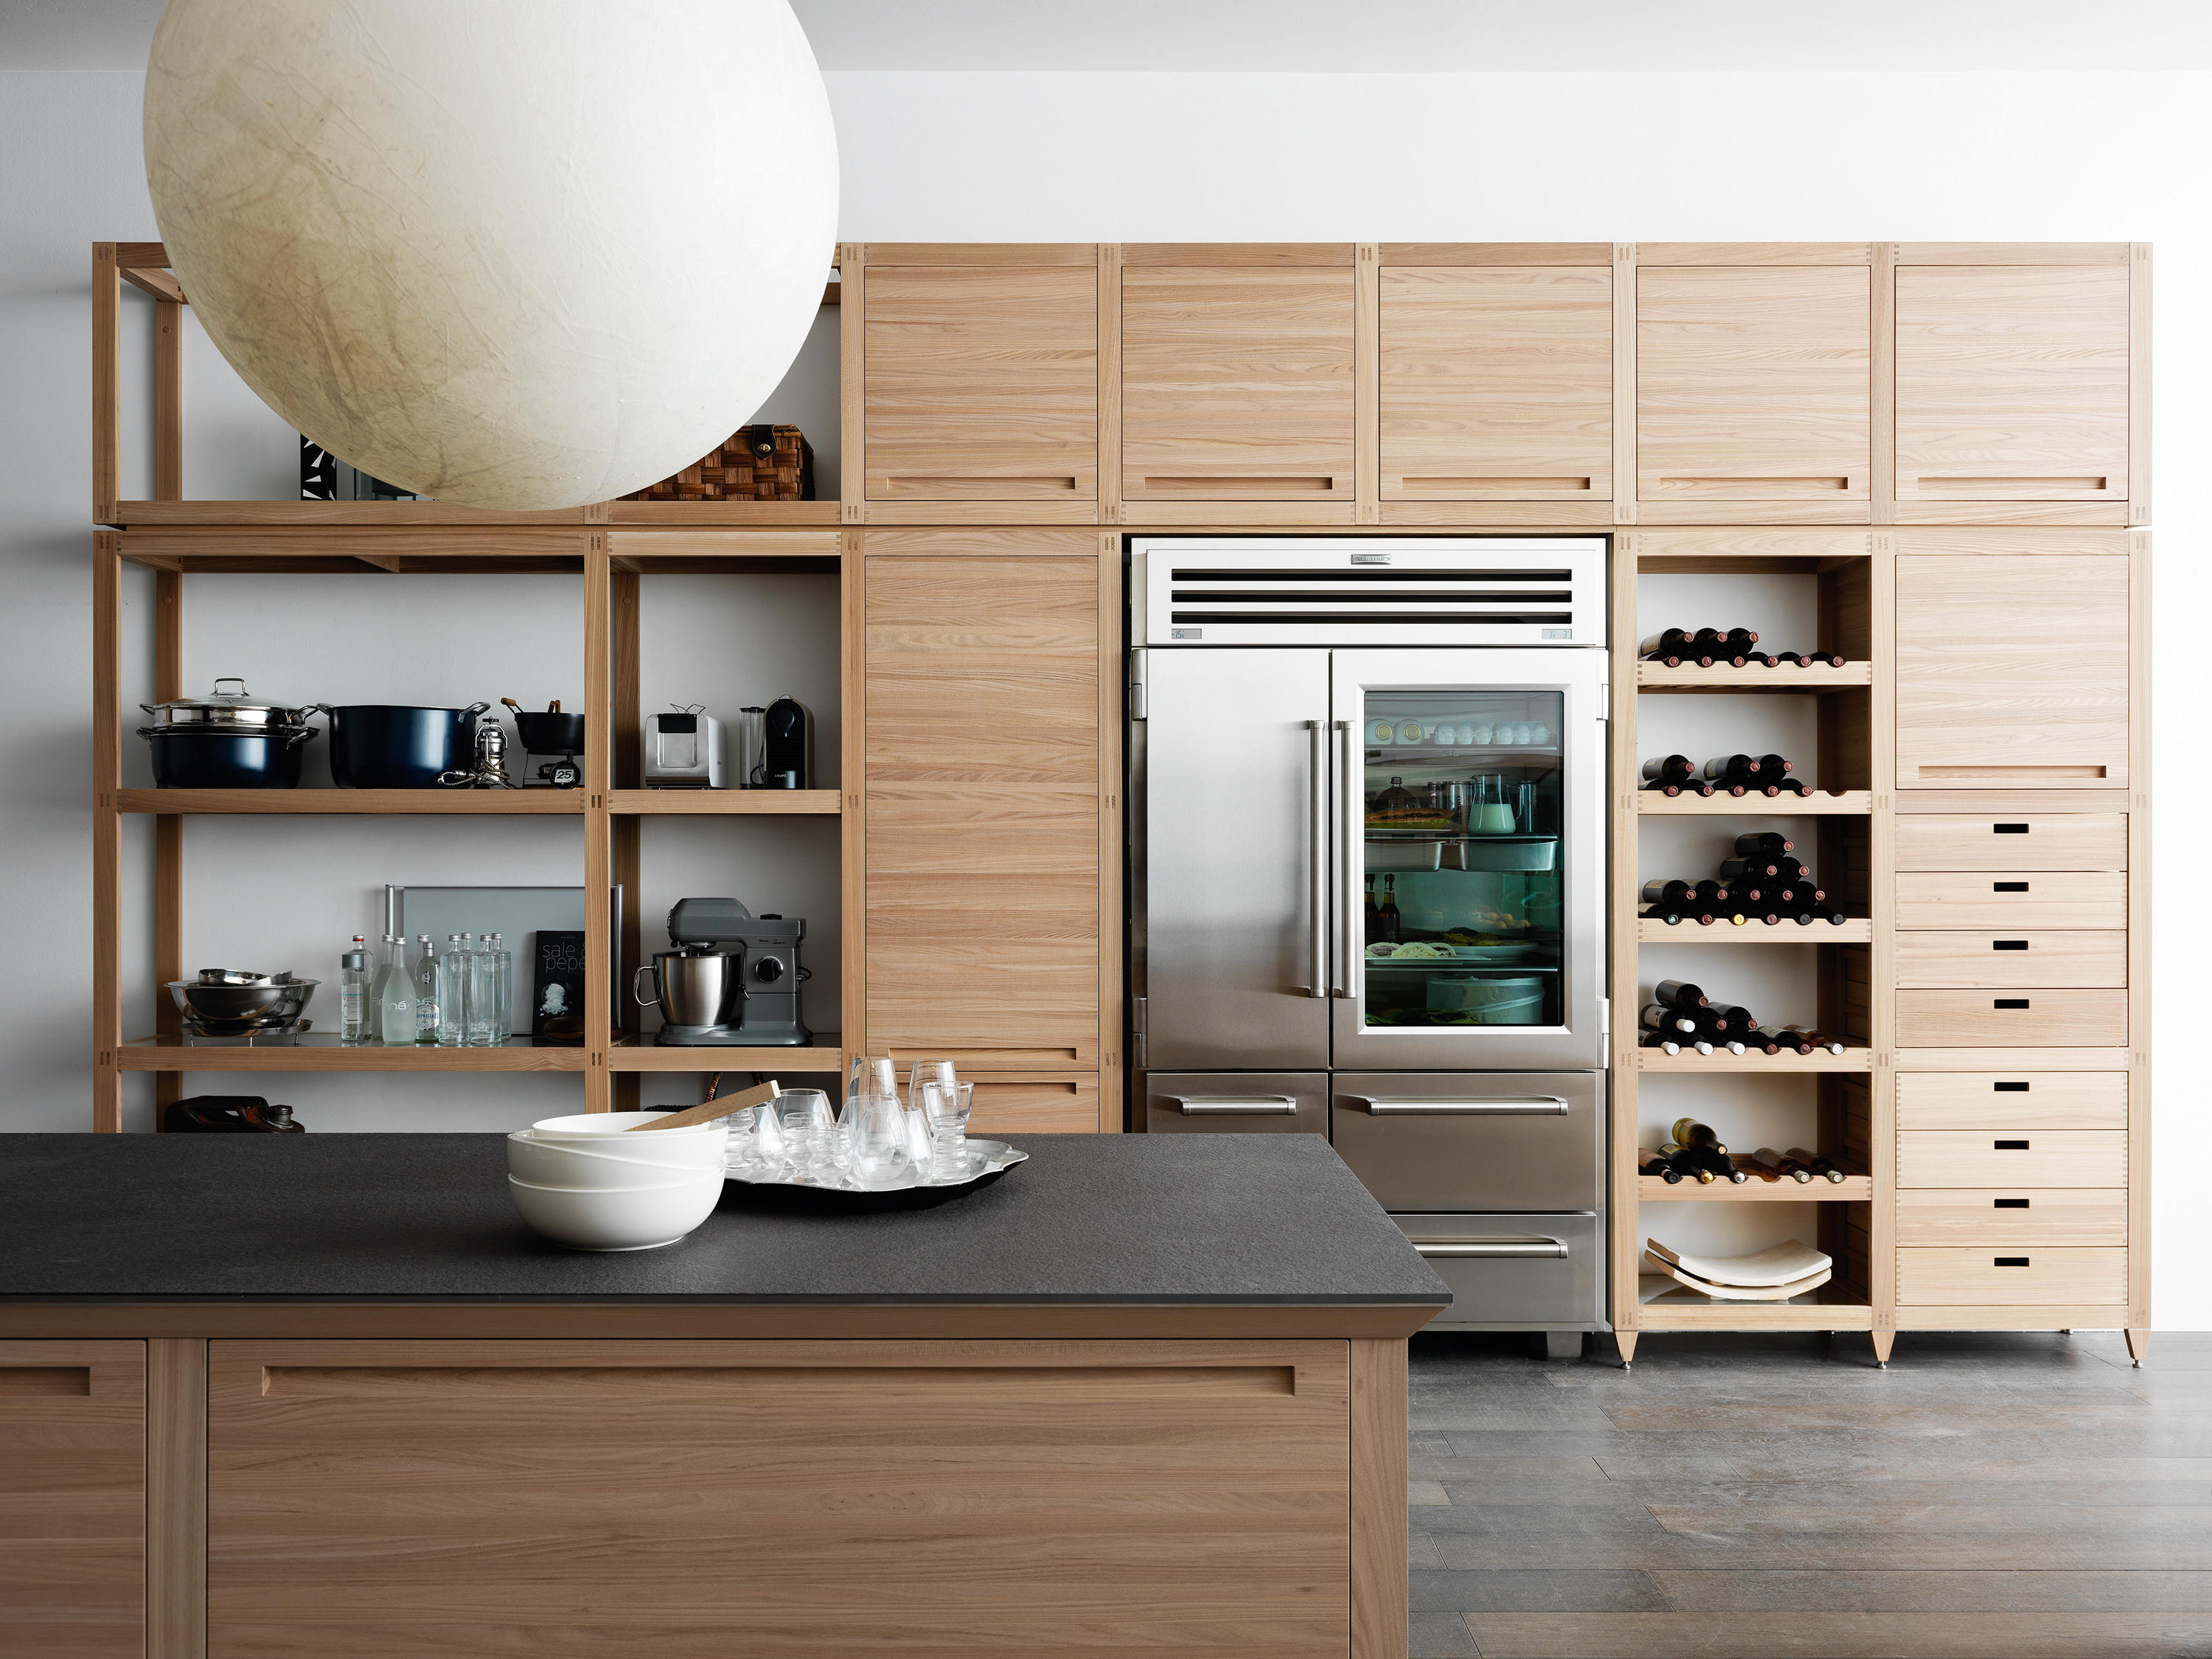 Sine tempore fitted kitchens from valcucine architonic for Valcucine prezzi